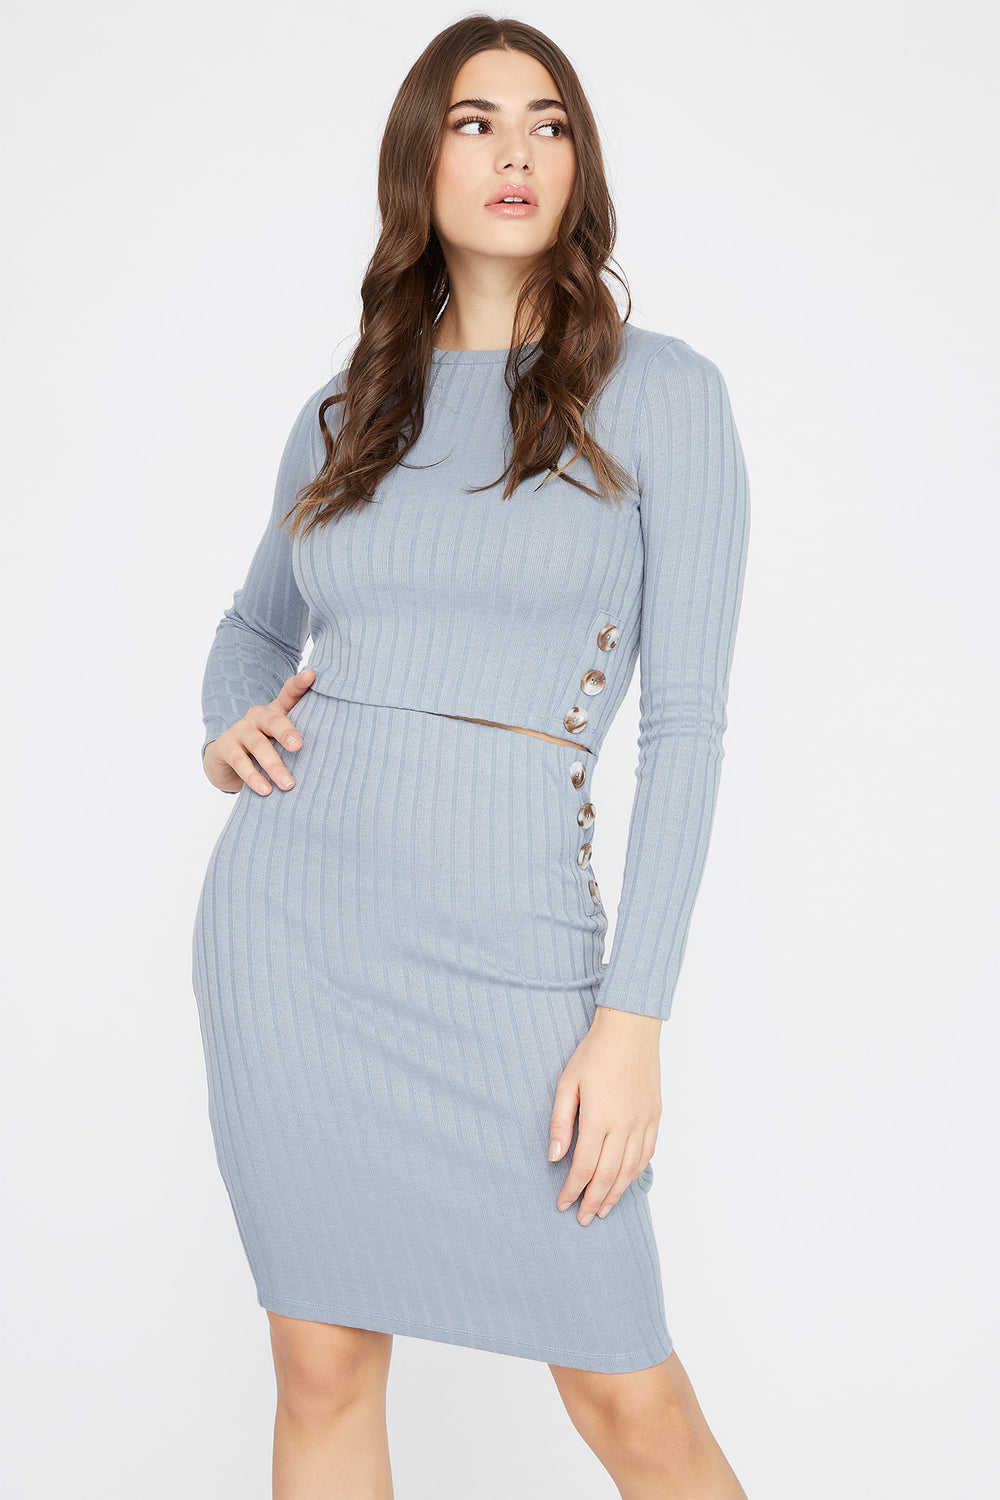 Ribbed Button Side Long Sleeve Grey Blue